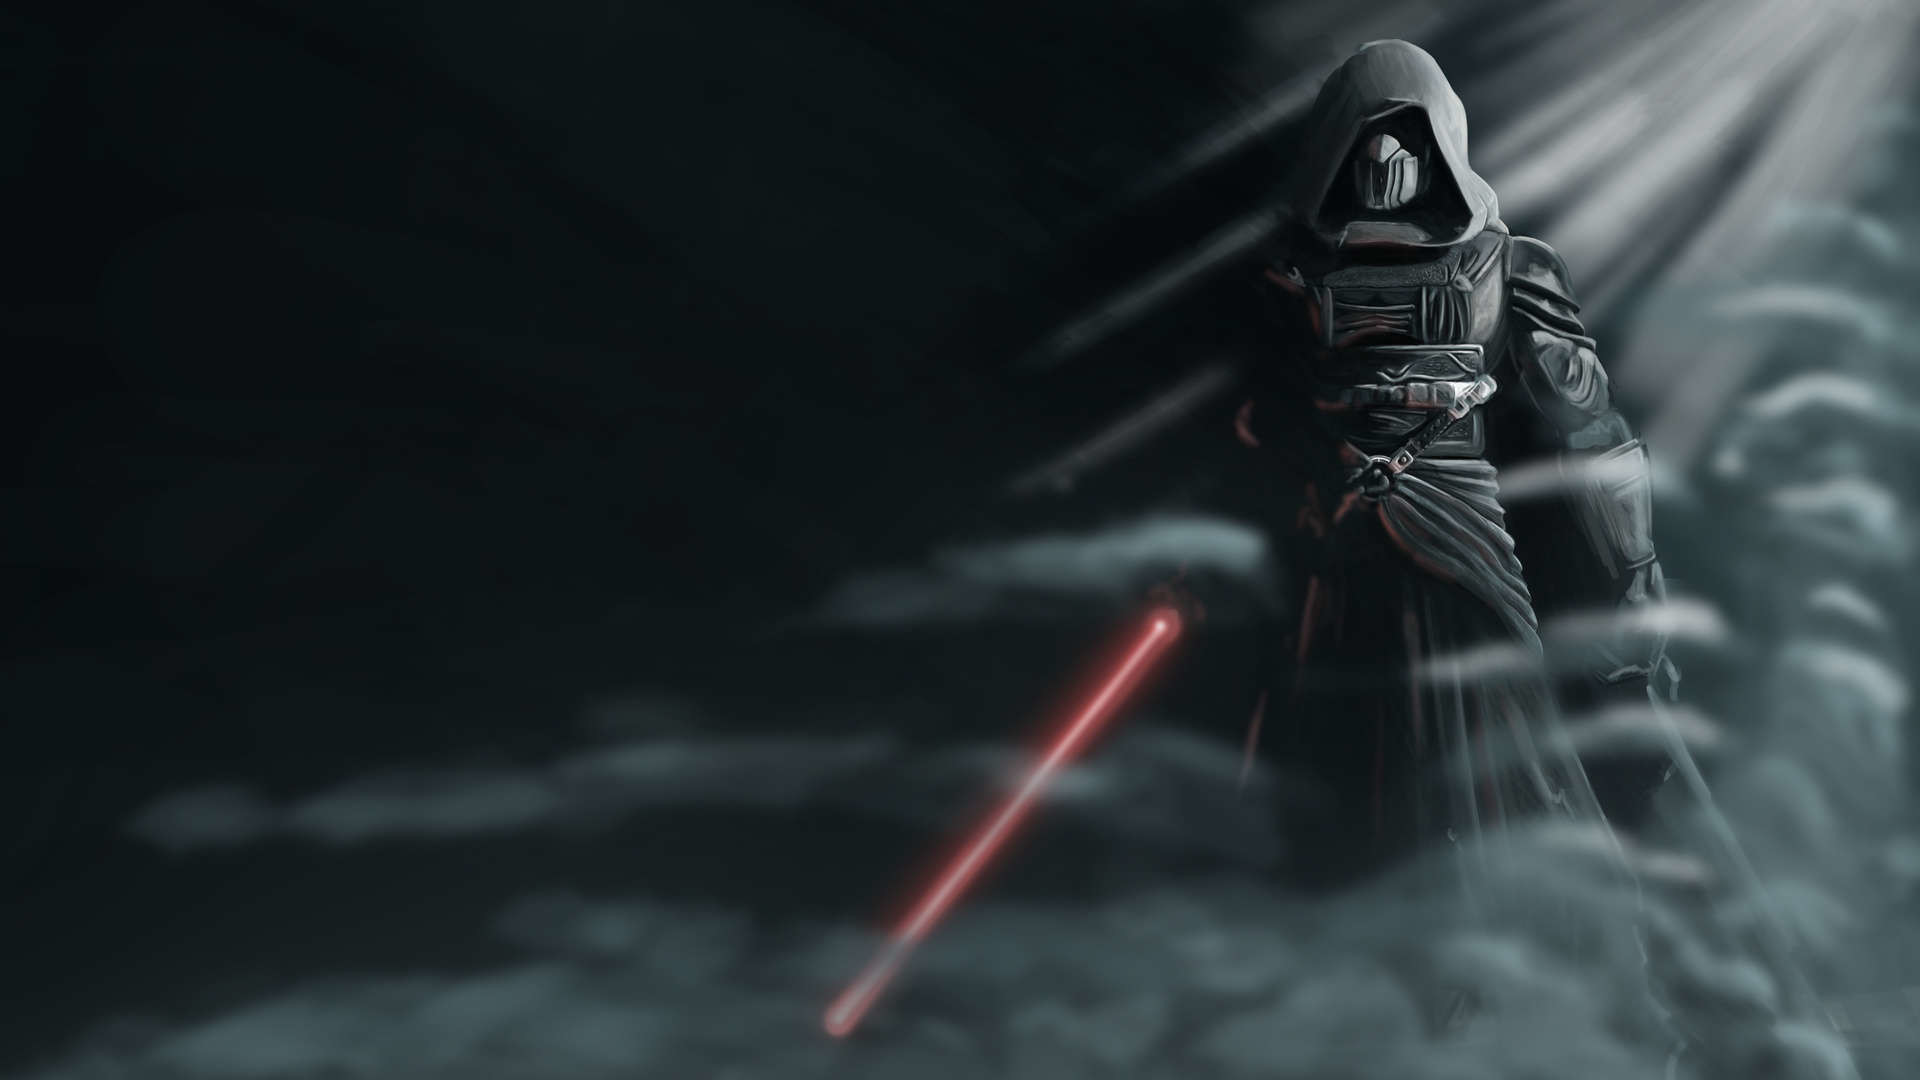 Star Wars Sith Wallpapers Full Hd